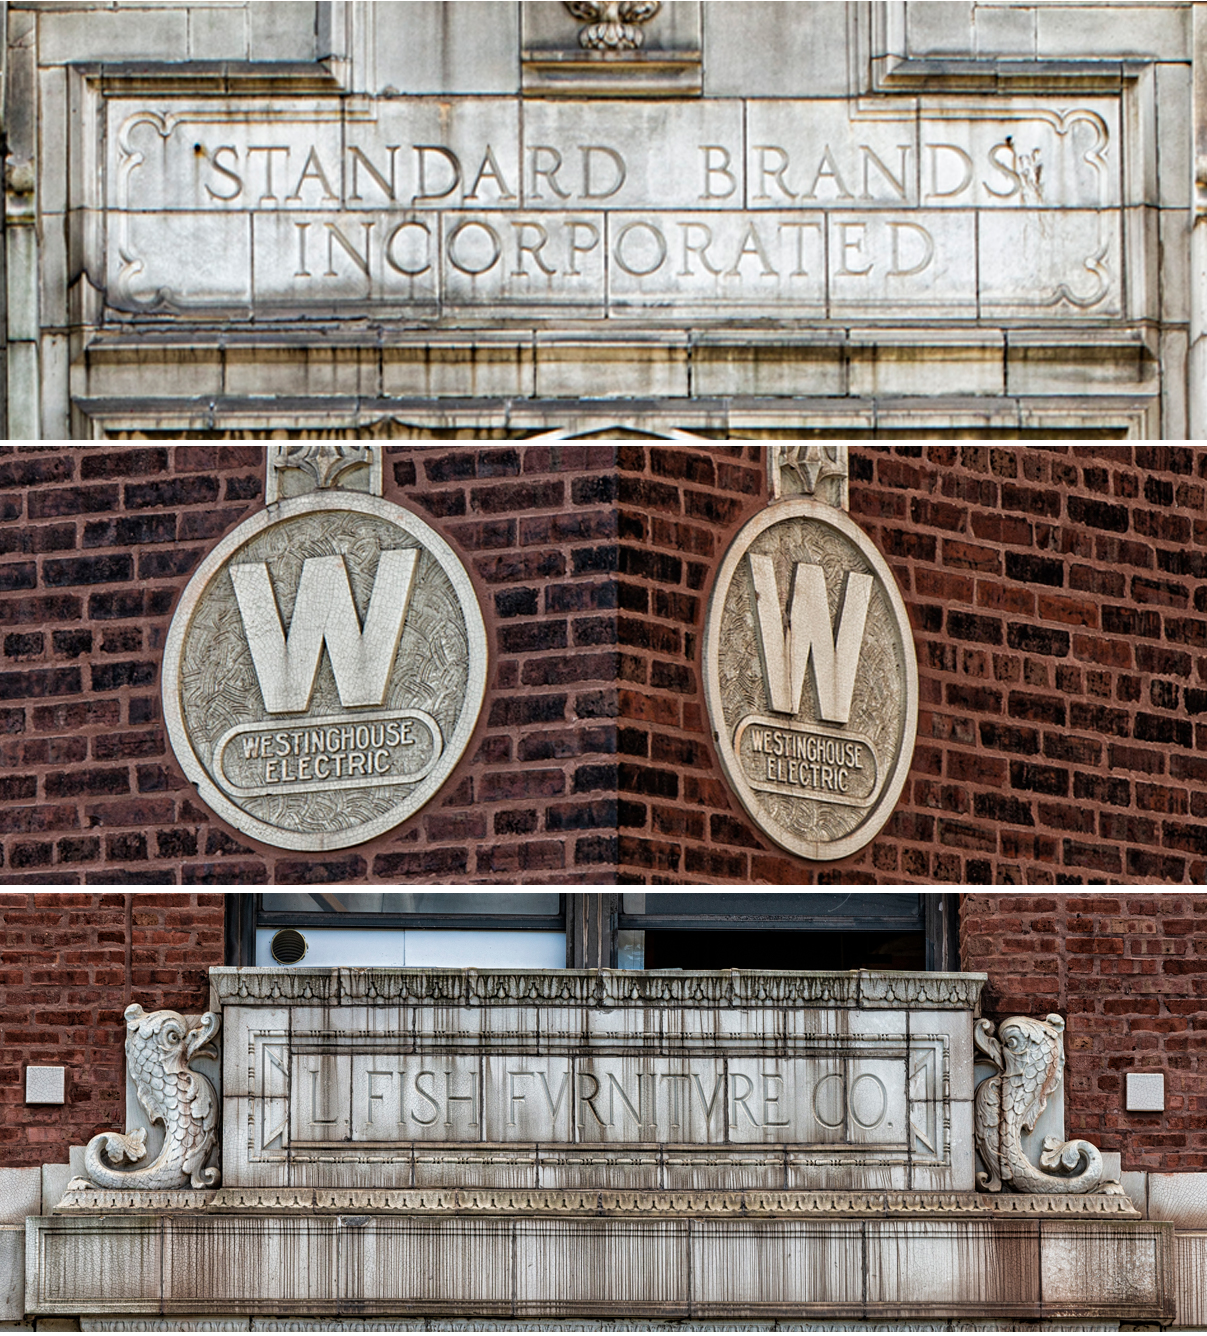 Terra cotta details hint at the businesses that formerly occupied these spaces. (Jason Marck/WBEZ)